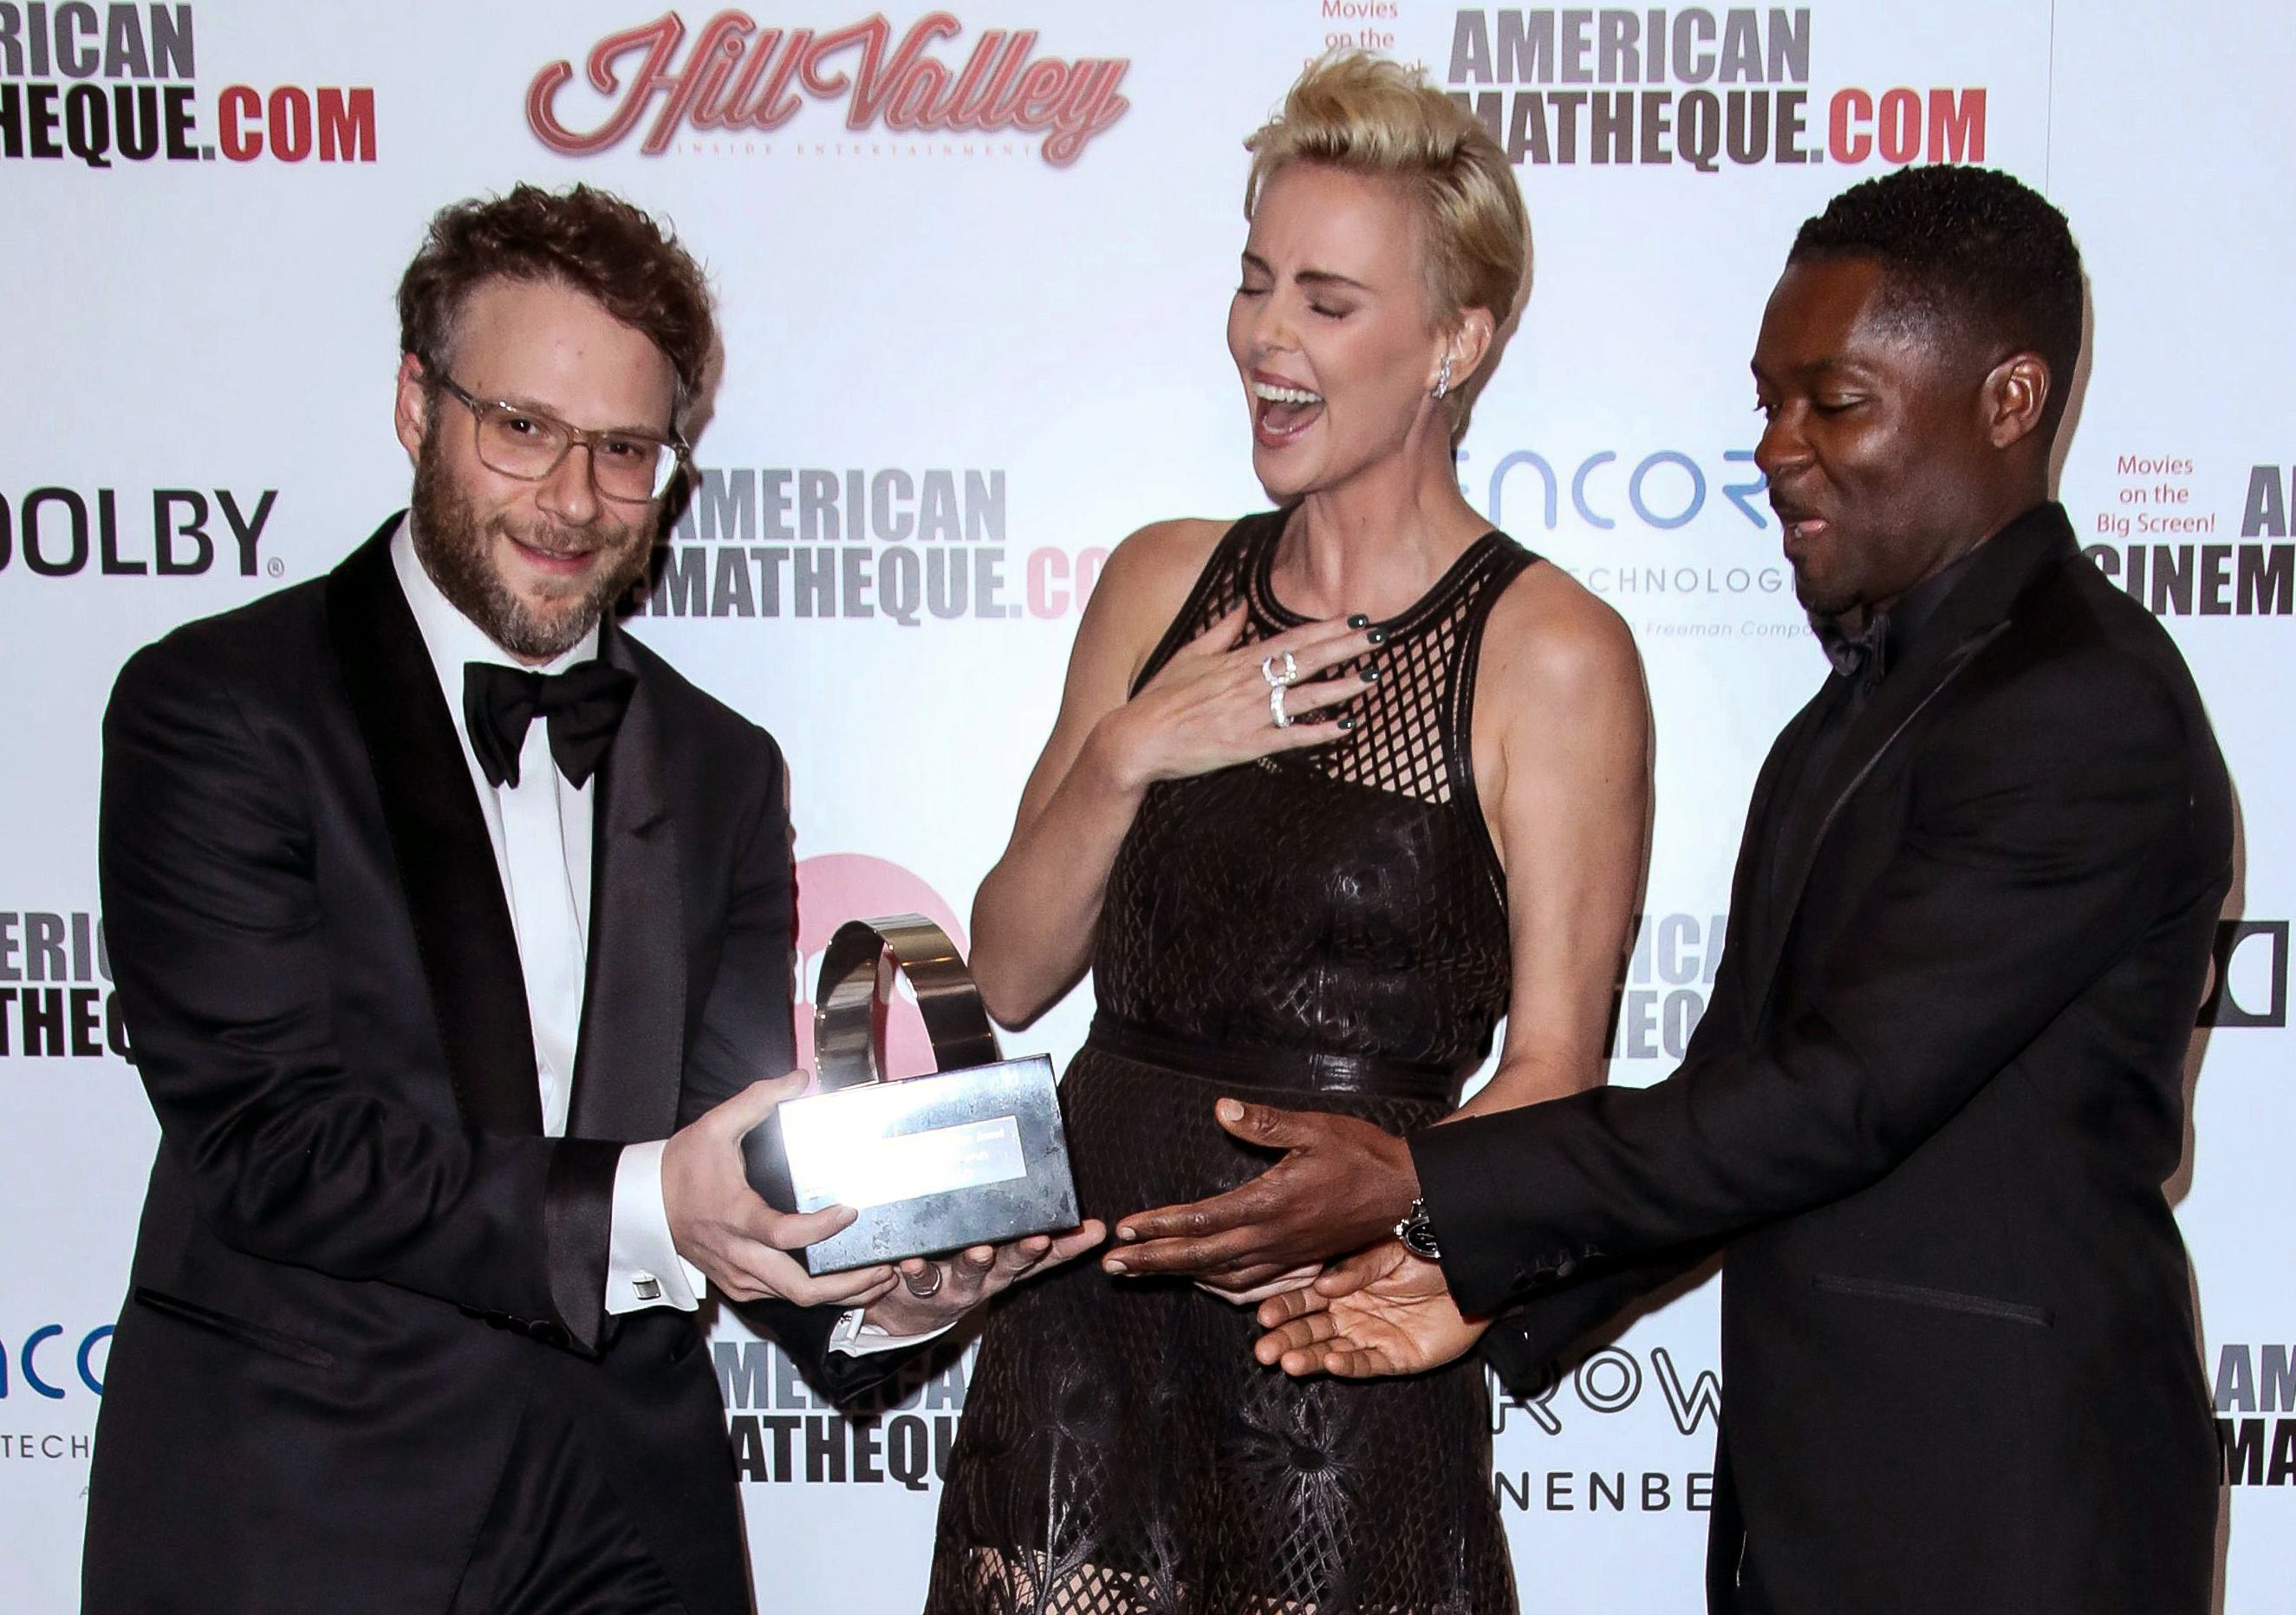 Seth Rogen, Charlize Theron and David Oyelowo33rd Annual American Cinematheque Awards Gala, Arrivals, Beverly Hilton, Los Angeles, USA - 08 Nov 2019